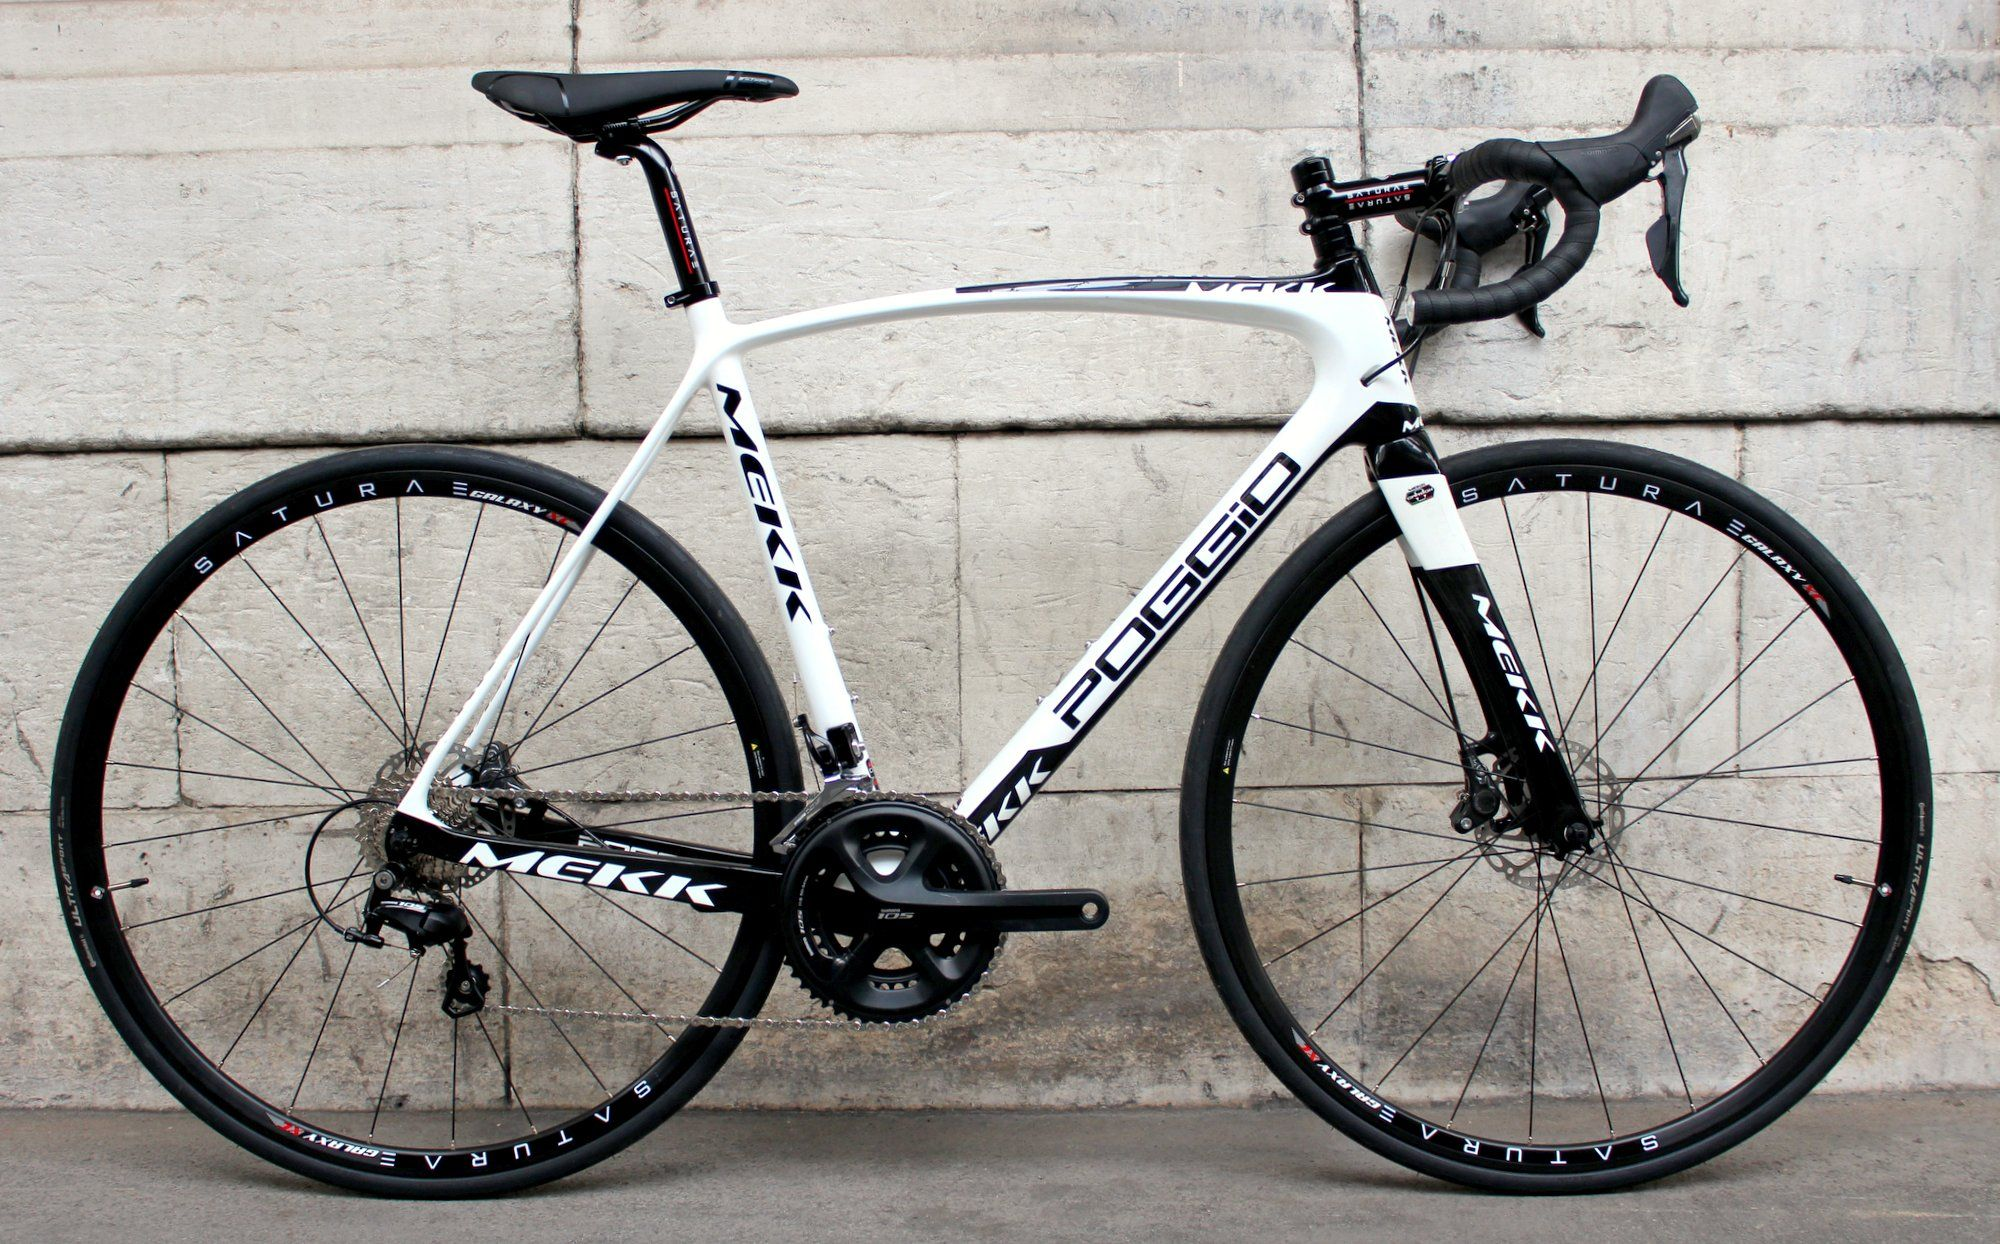 Mekk poggio ds 2 6 road bike review